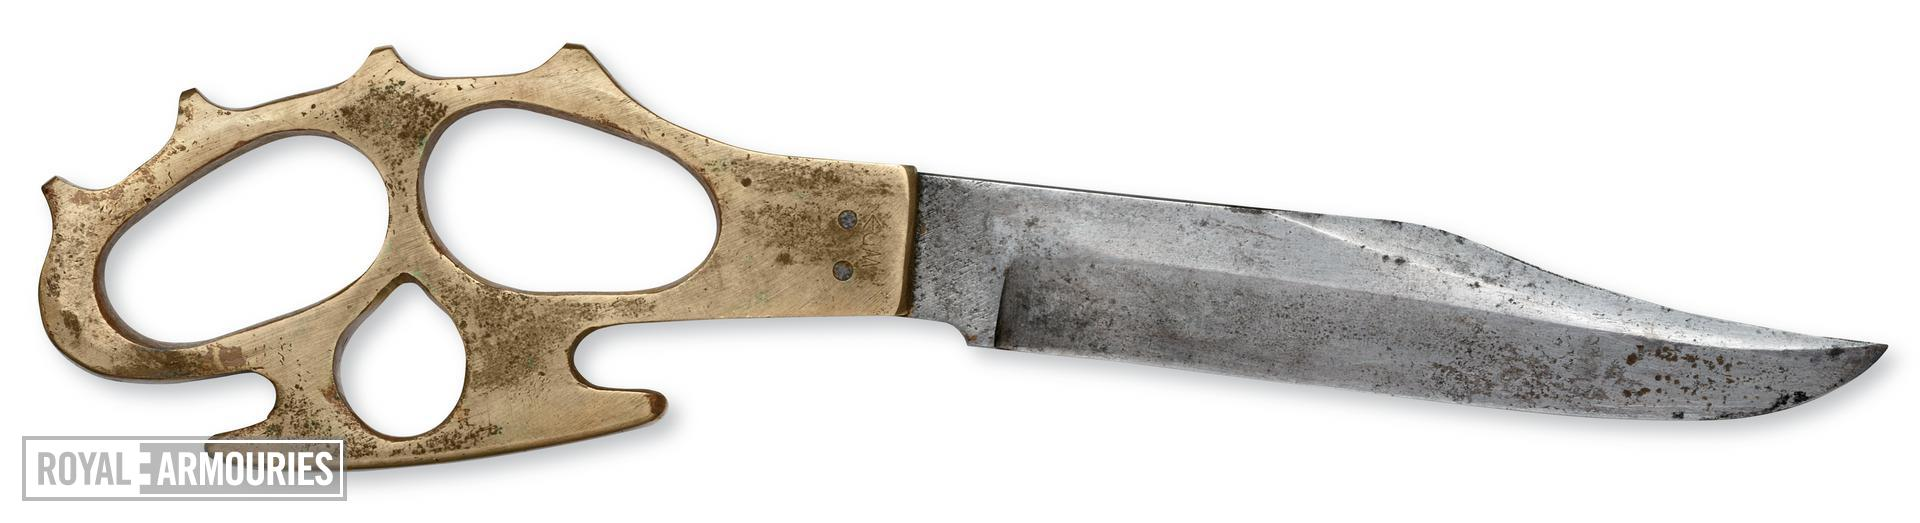 Knuckleduster, knife and sheath